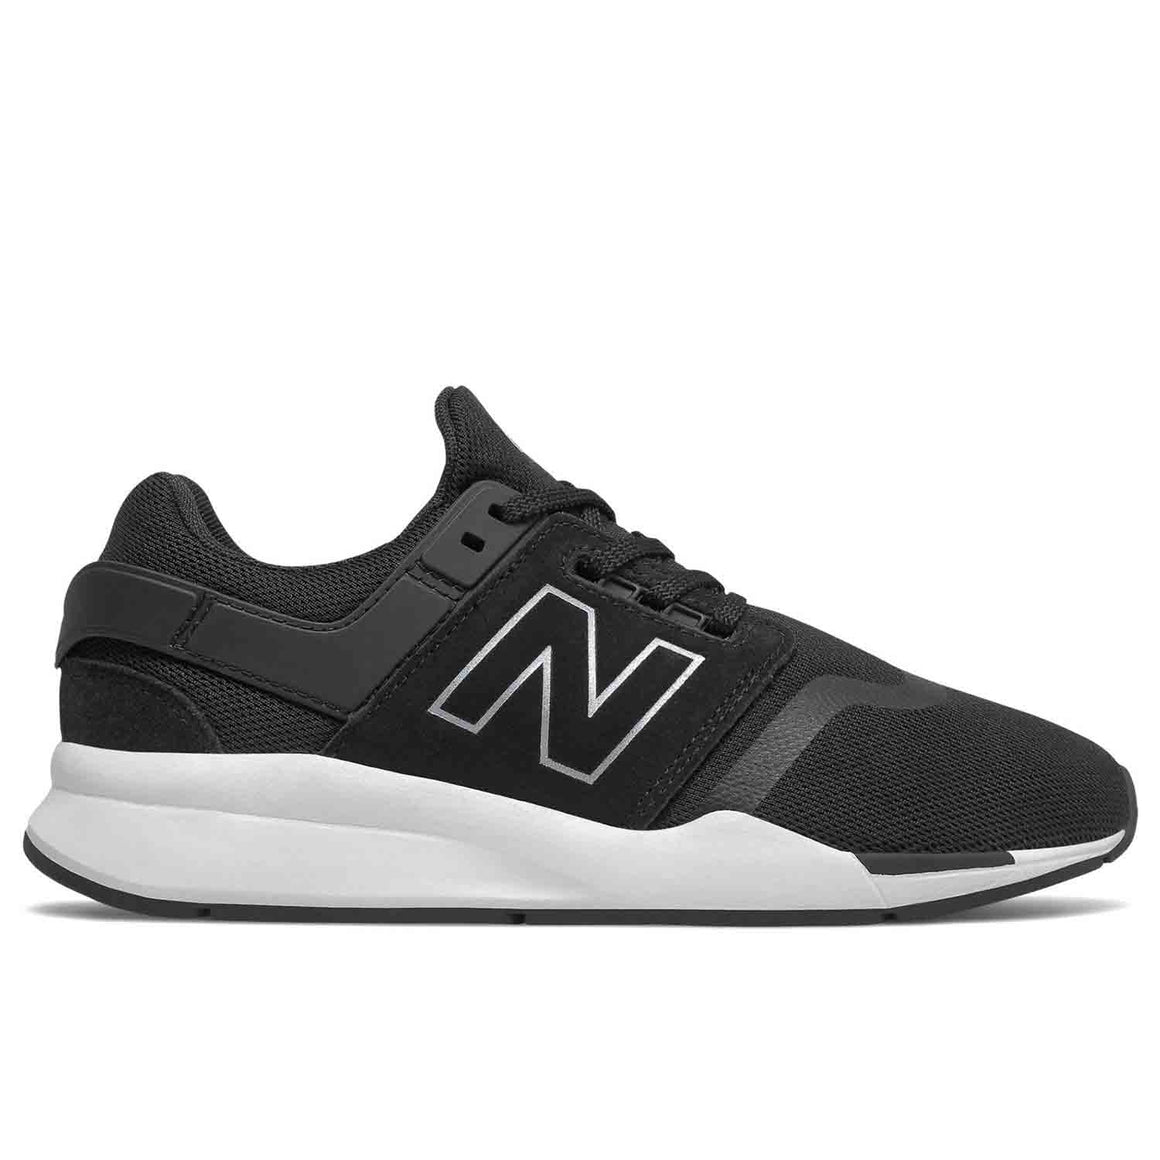 NEW BALANCE BLACK WHITE SNEAKER